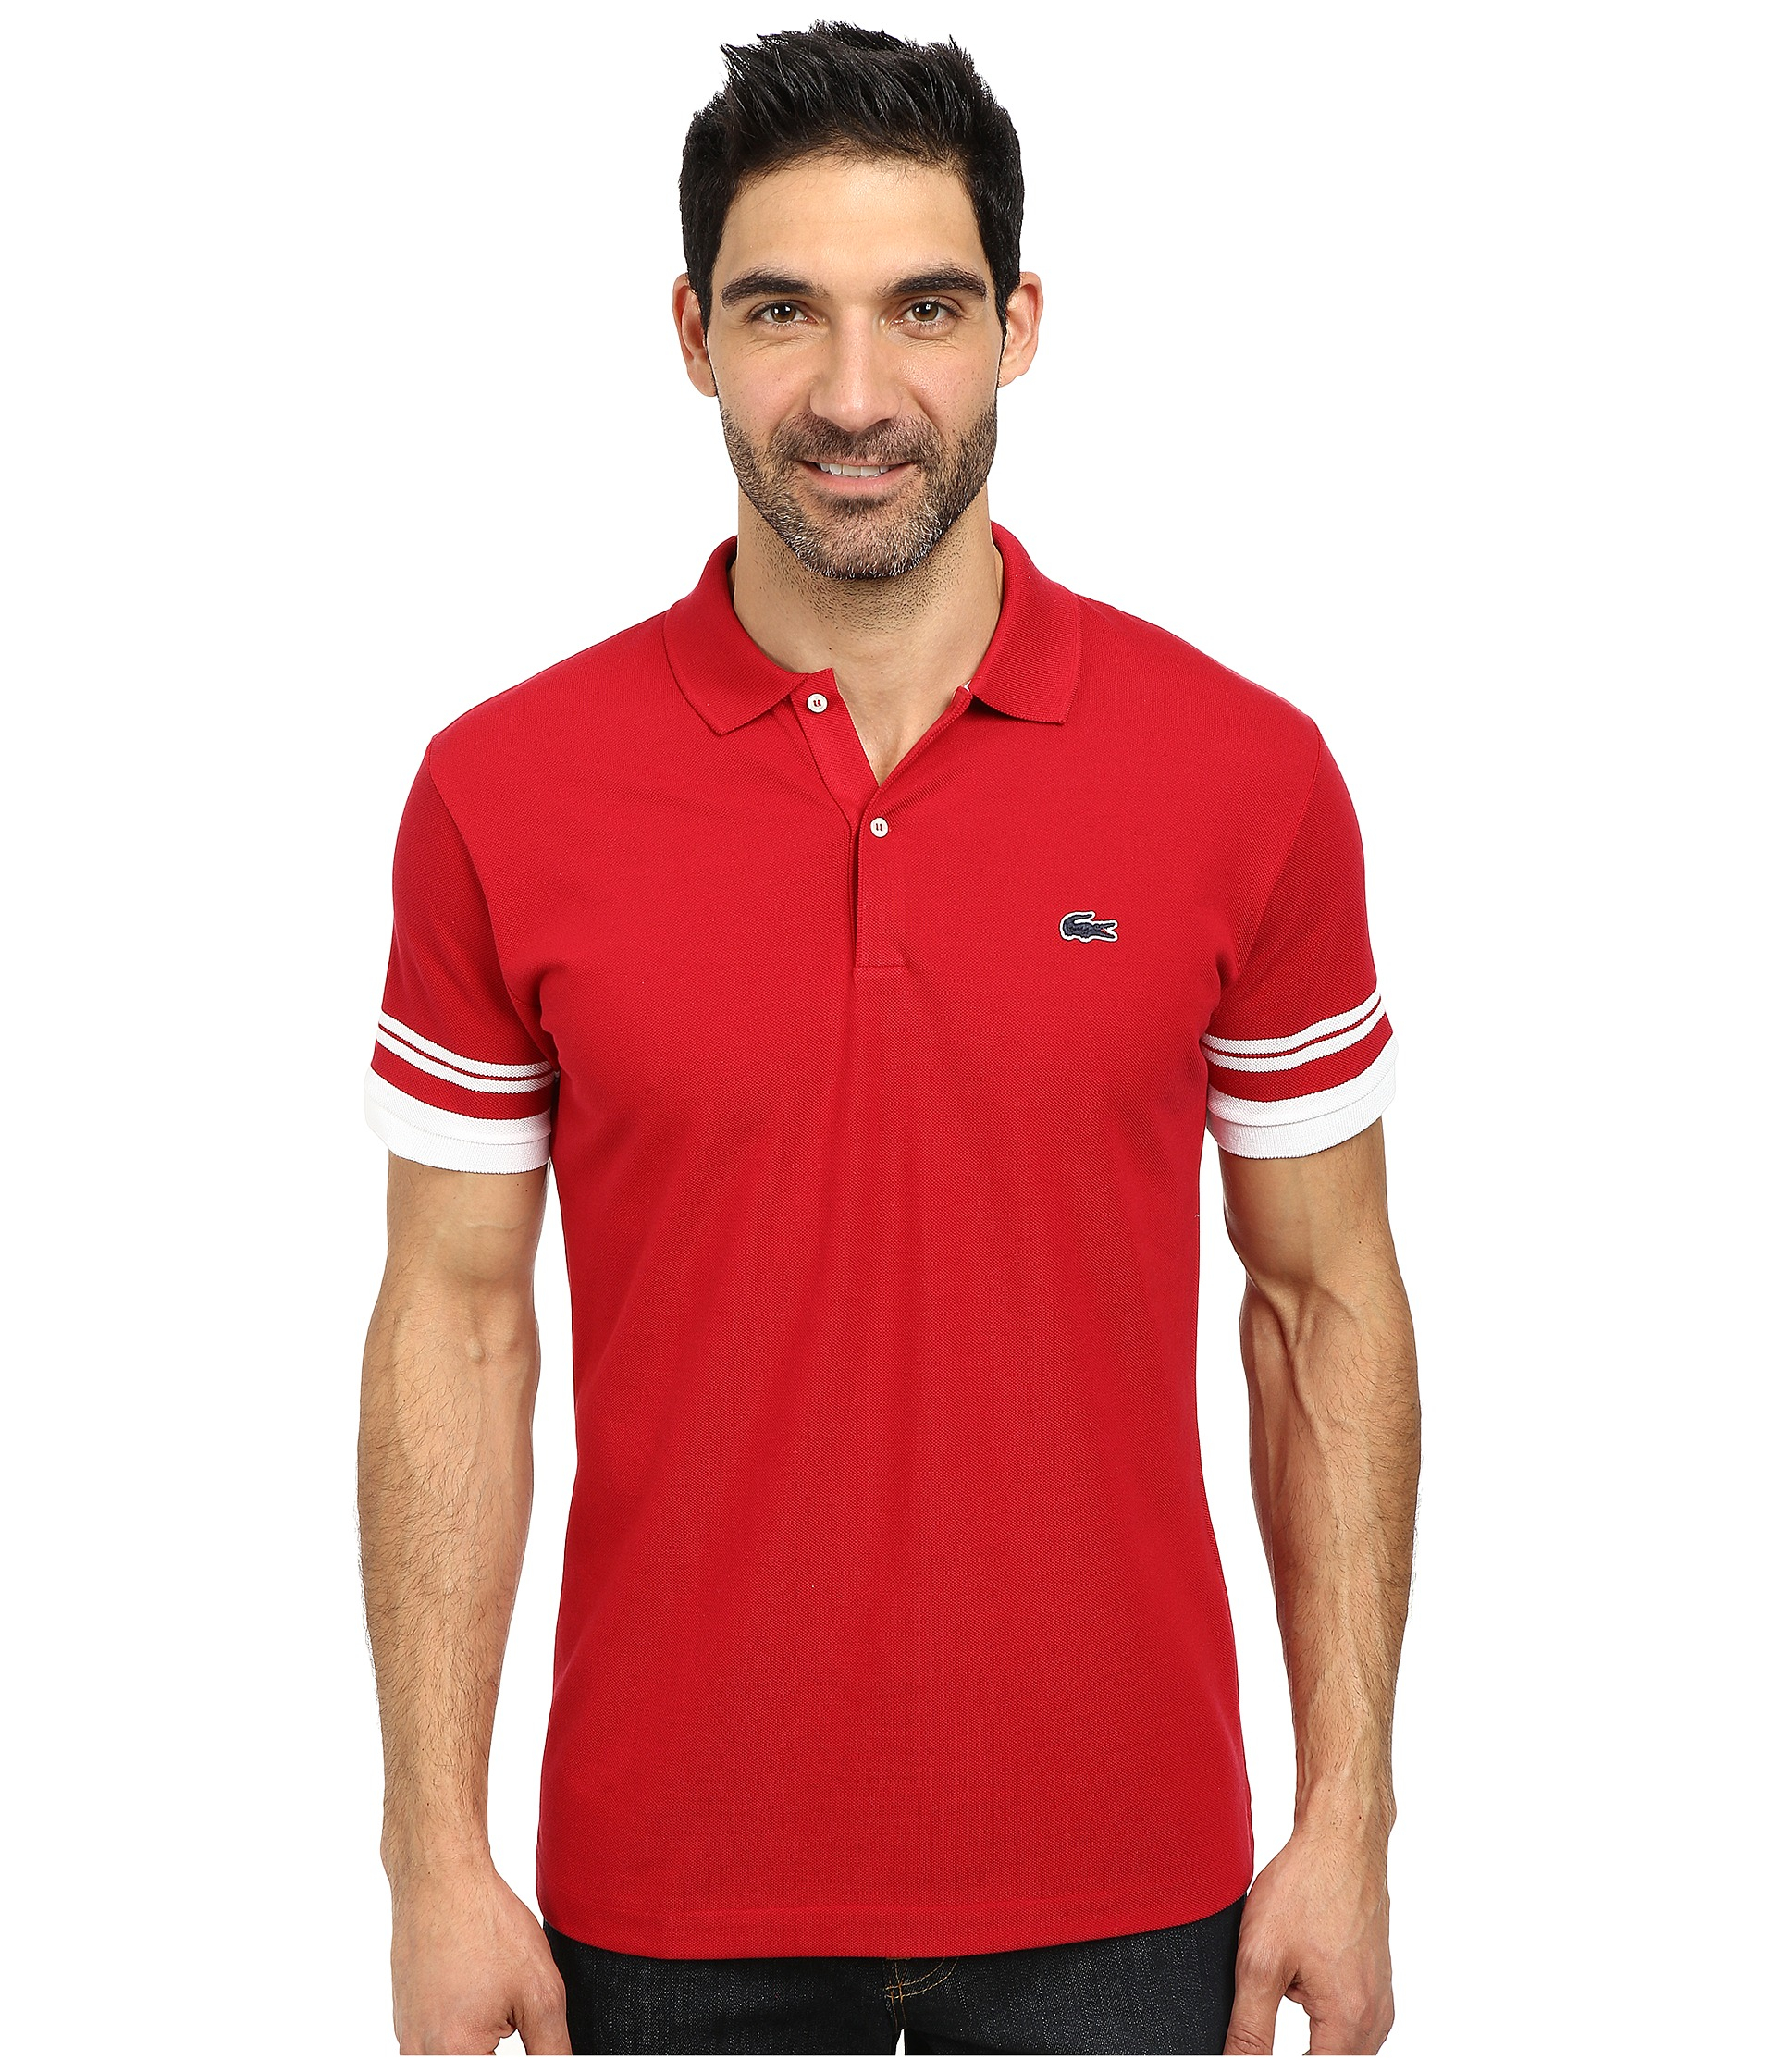 lyst lacoste cotton pique semi fancy slim fit made in france polo in red for men. Black Bedroom Furniture Sets. Home Design Ideas